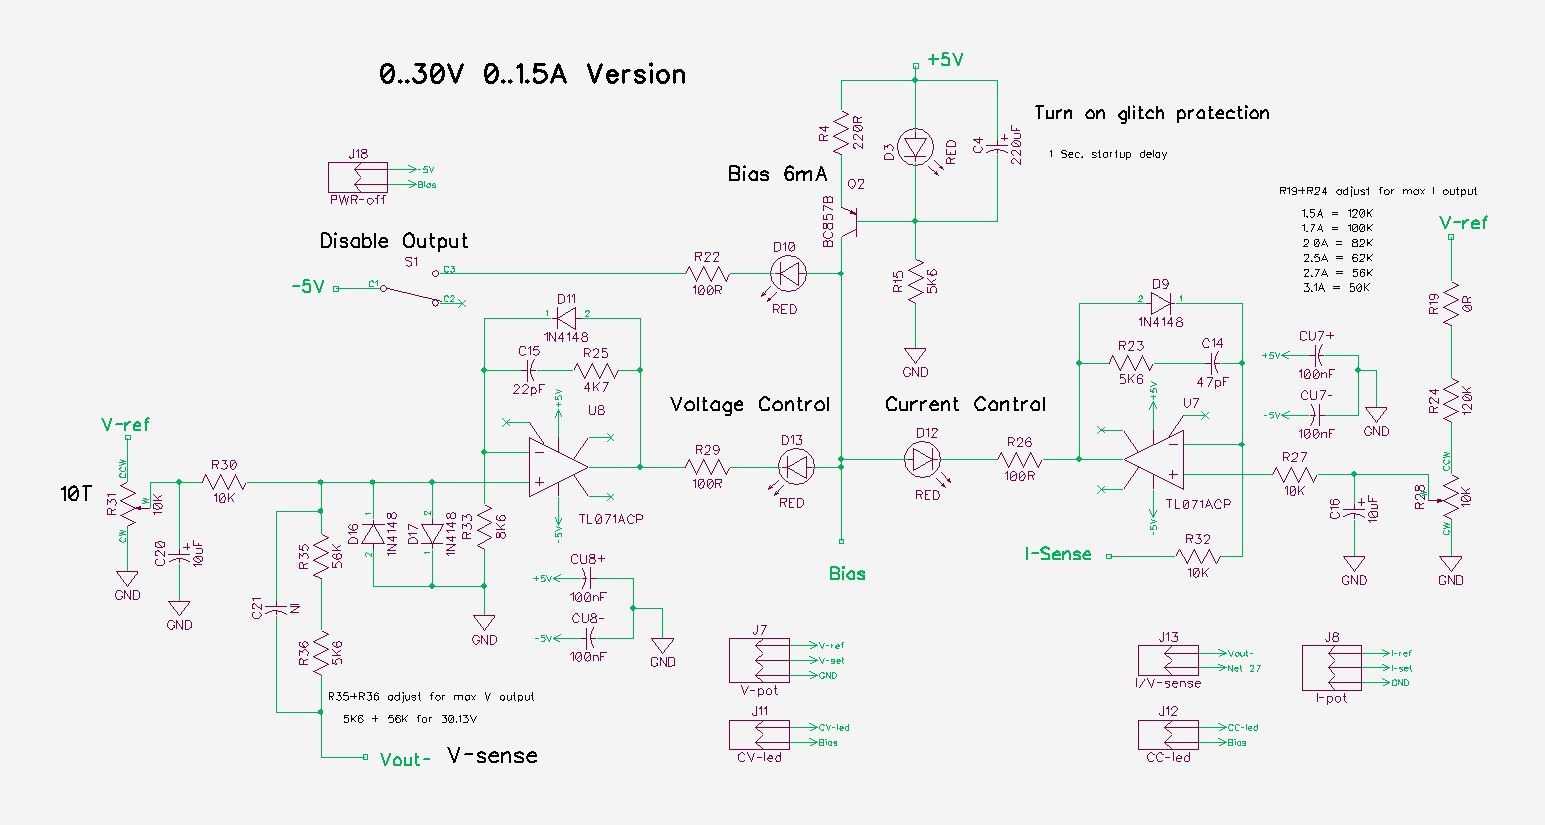 Pauls Diy Electronics Blog My New Power Supply Design Project Part 3 Shows You How To Build A Dcdc Schematichere39s Dc Circuit Note That I Used Two Resistors In Series Set The Maximum Voltage R35 And R36 Current R19 R24 For This Allows Use Various